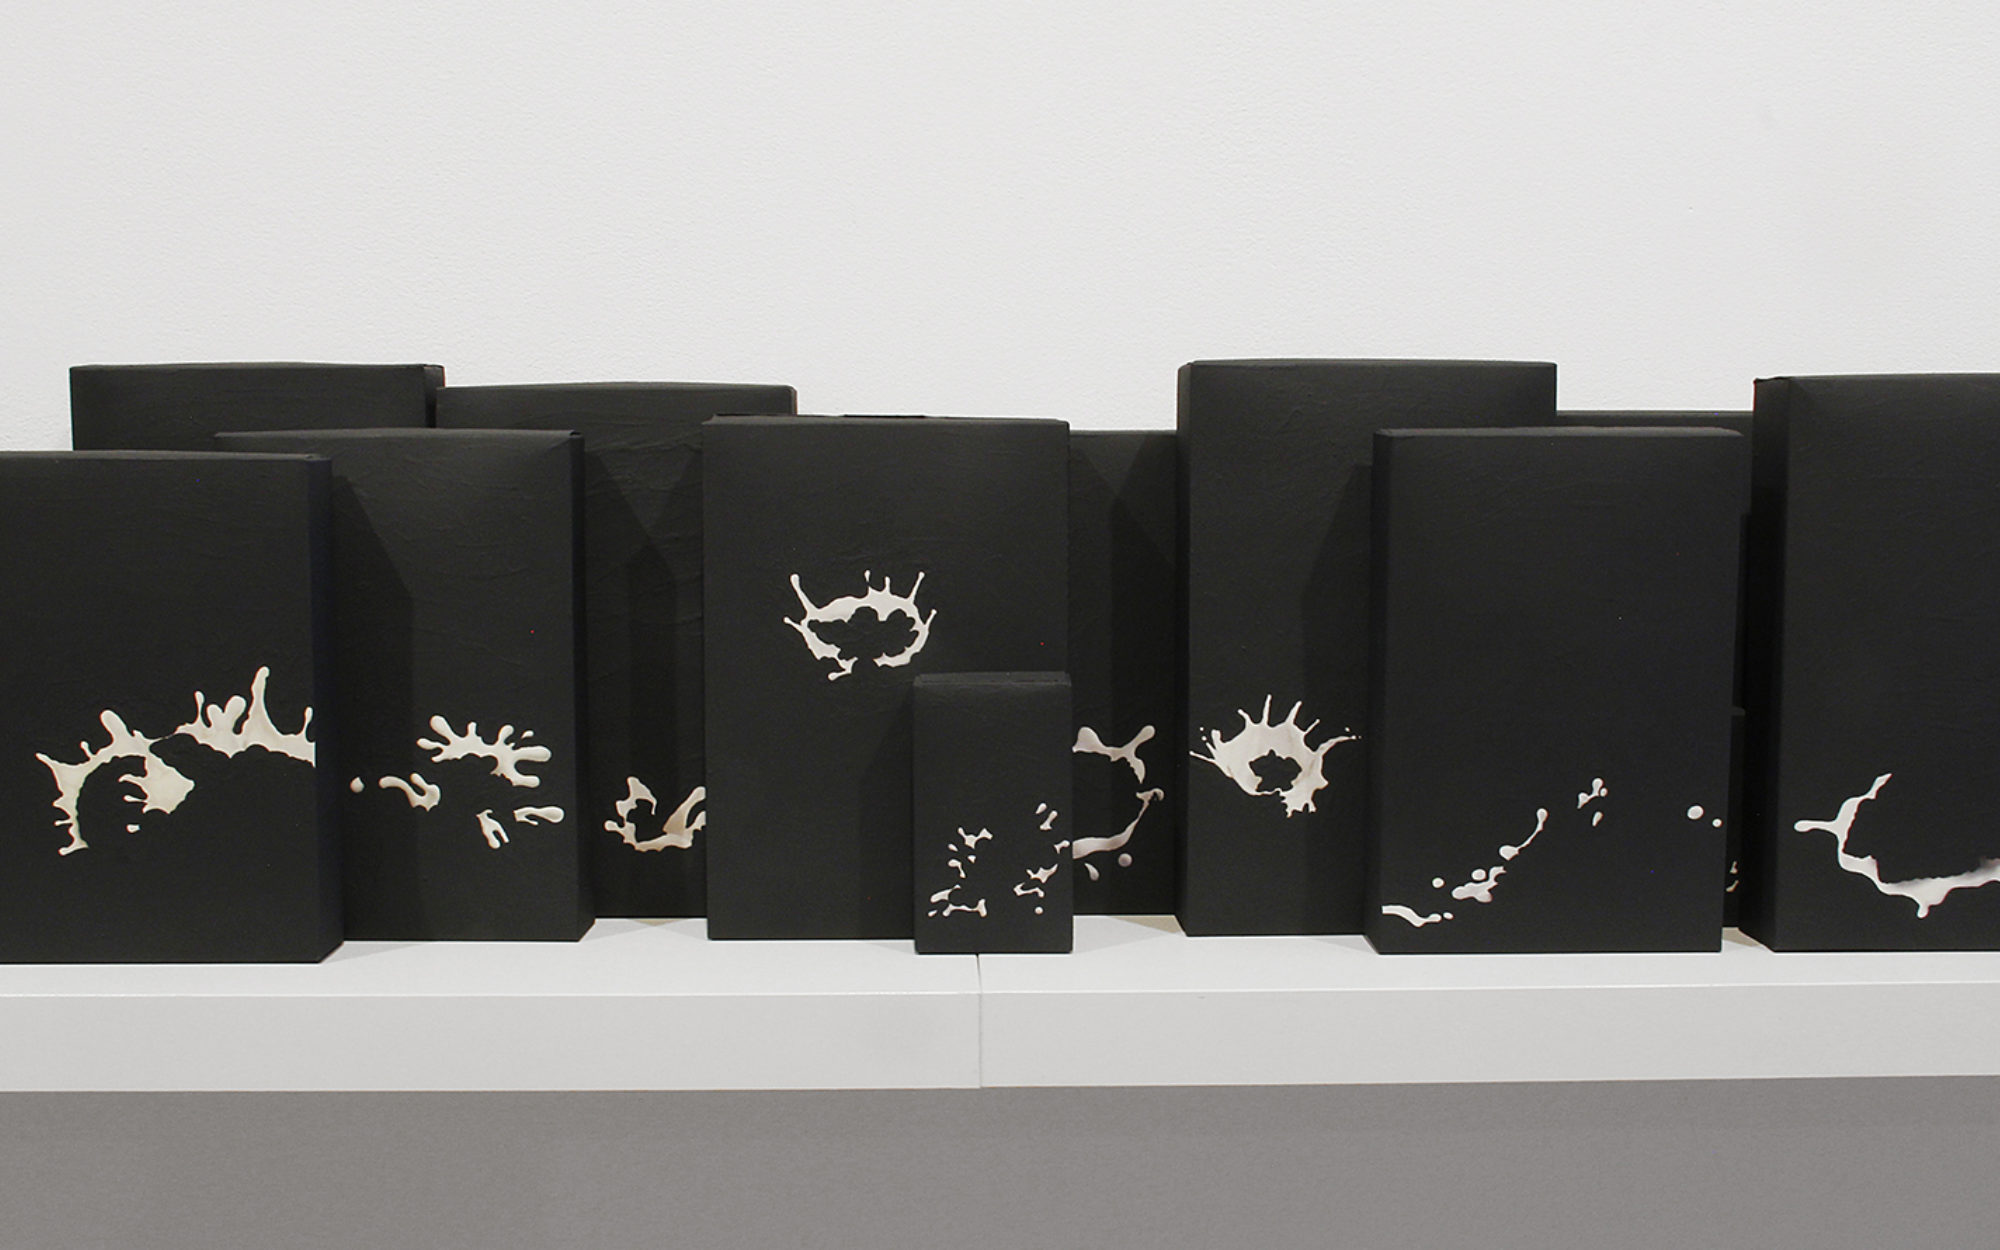 Small black sculptural works on a white shelf